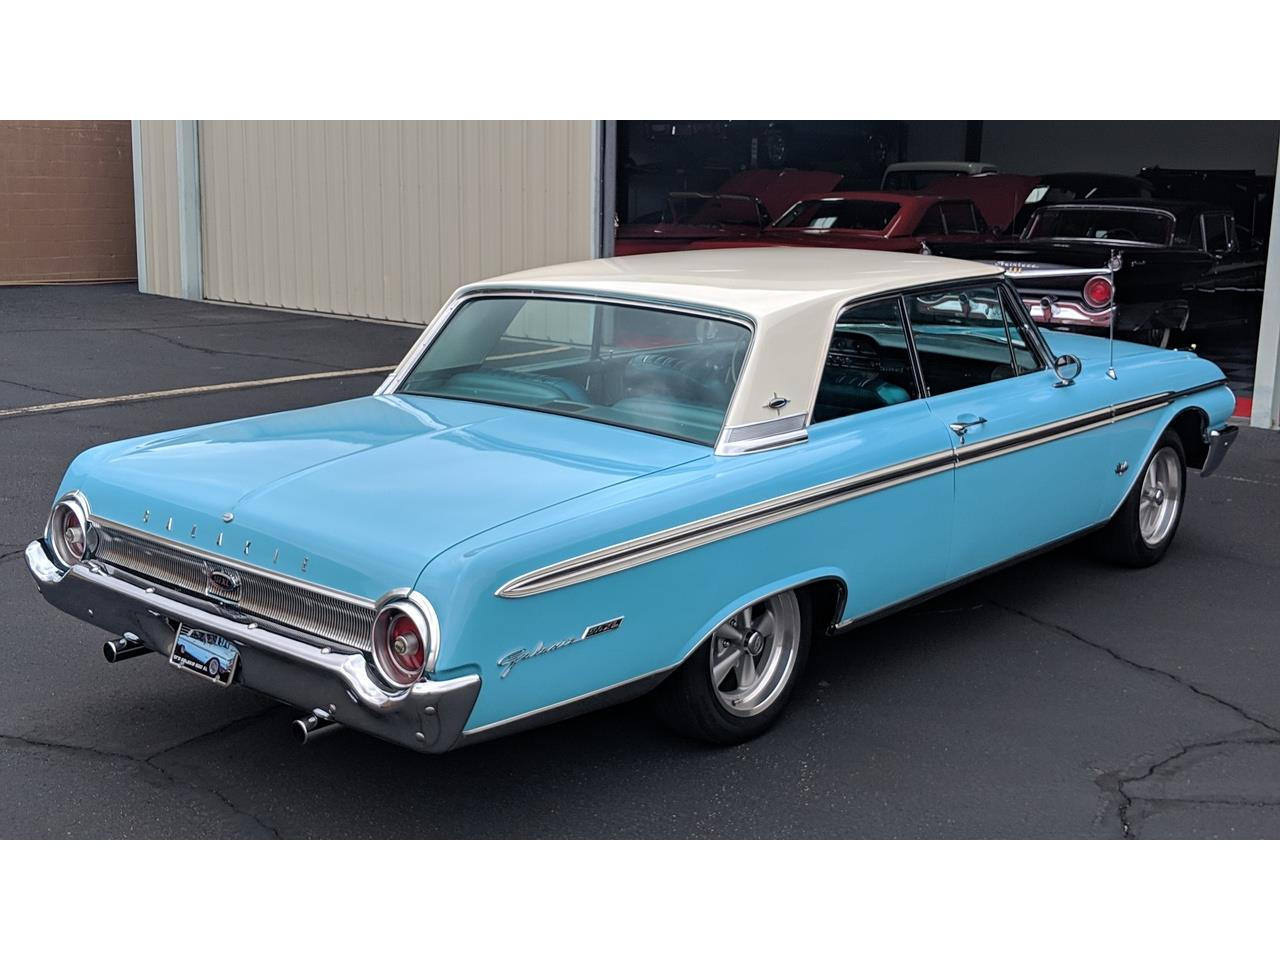 Large Picture of 1962 Ford Galaxie 500 XL located in North Pheonix Arizona - $25,900.00 Offered by a Private Seller - PQ6R